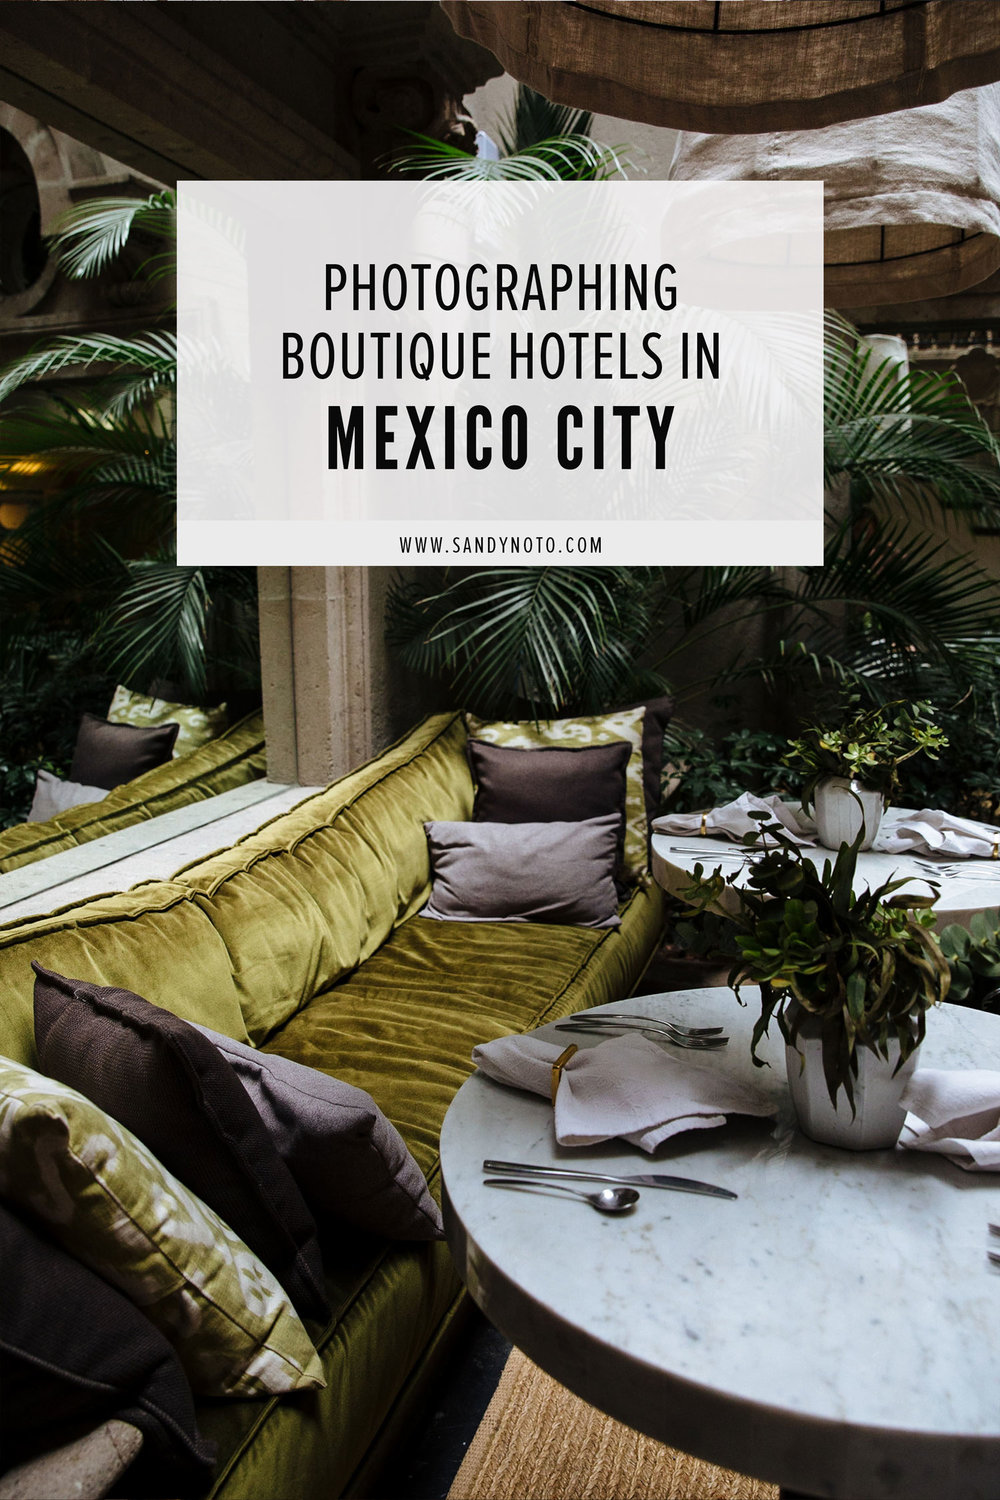 Photographing Boutique Hotels in Mexico City